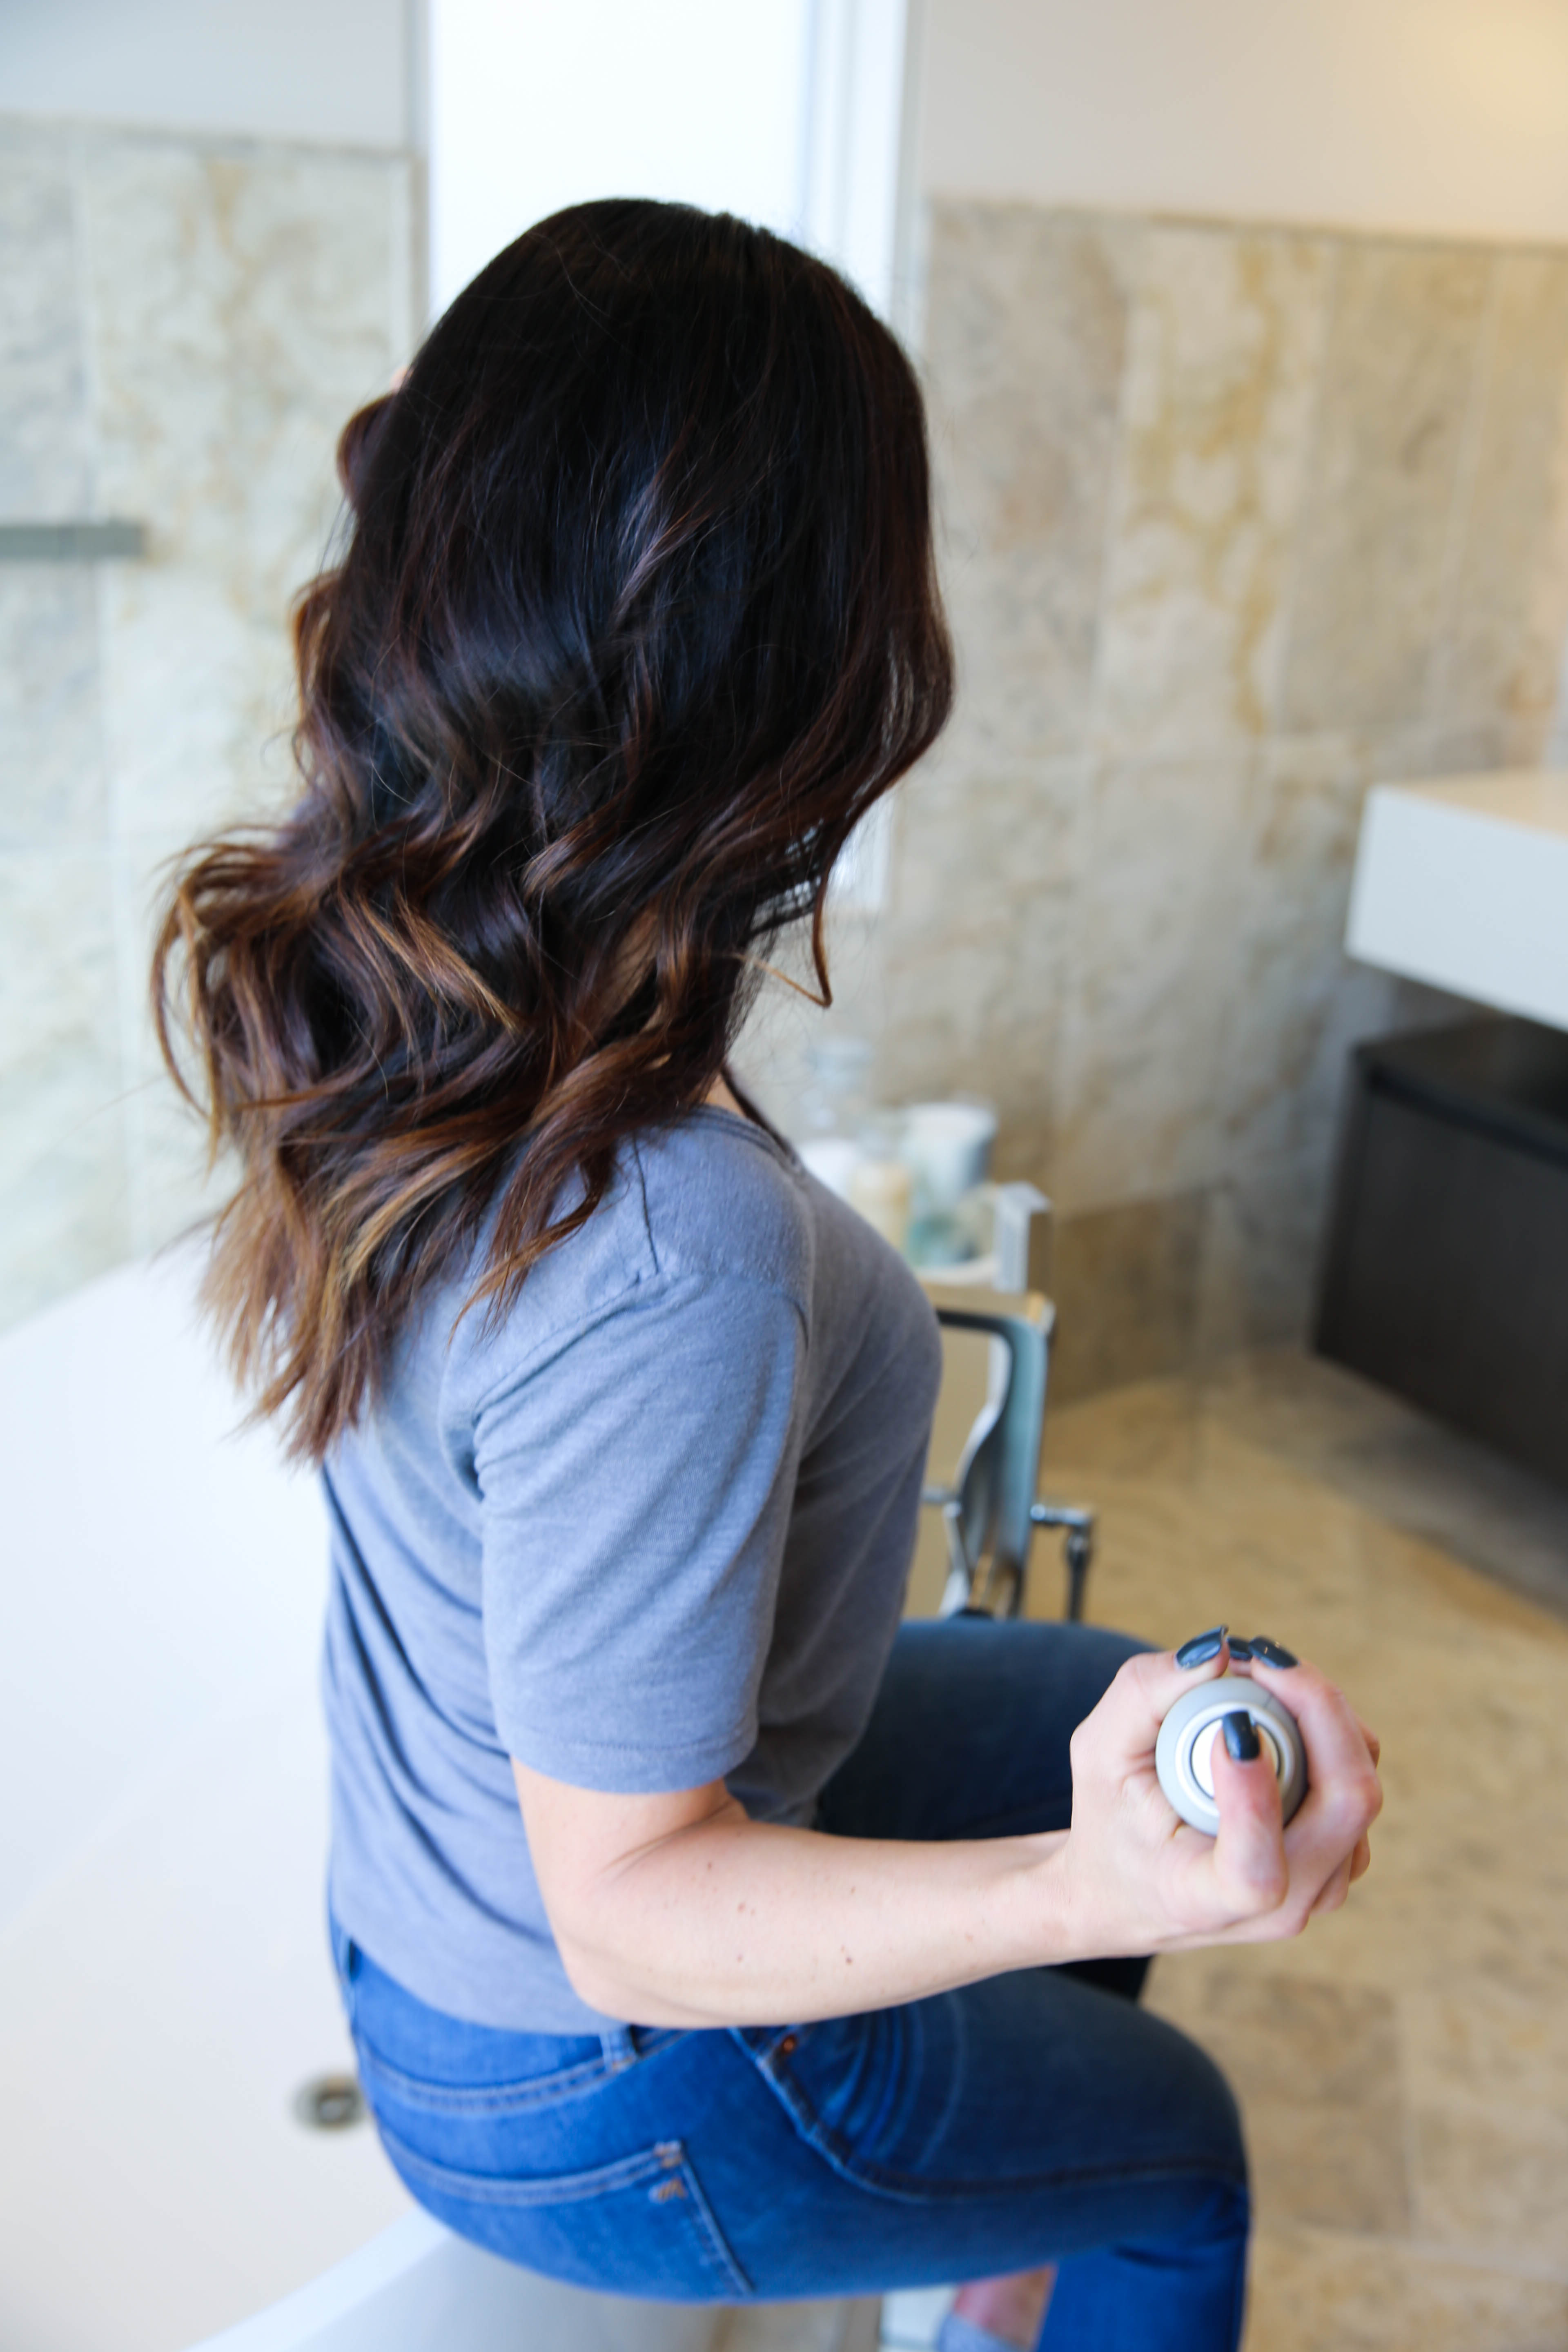 PaleOMG Hair Products I'm Loving Lately (+ The Main Thing That Has Improved My Hair SO Much)